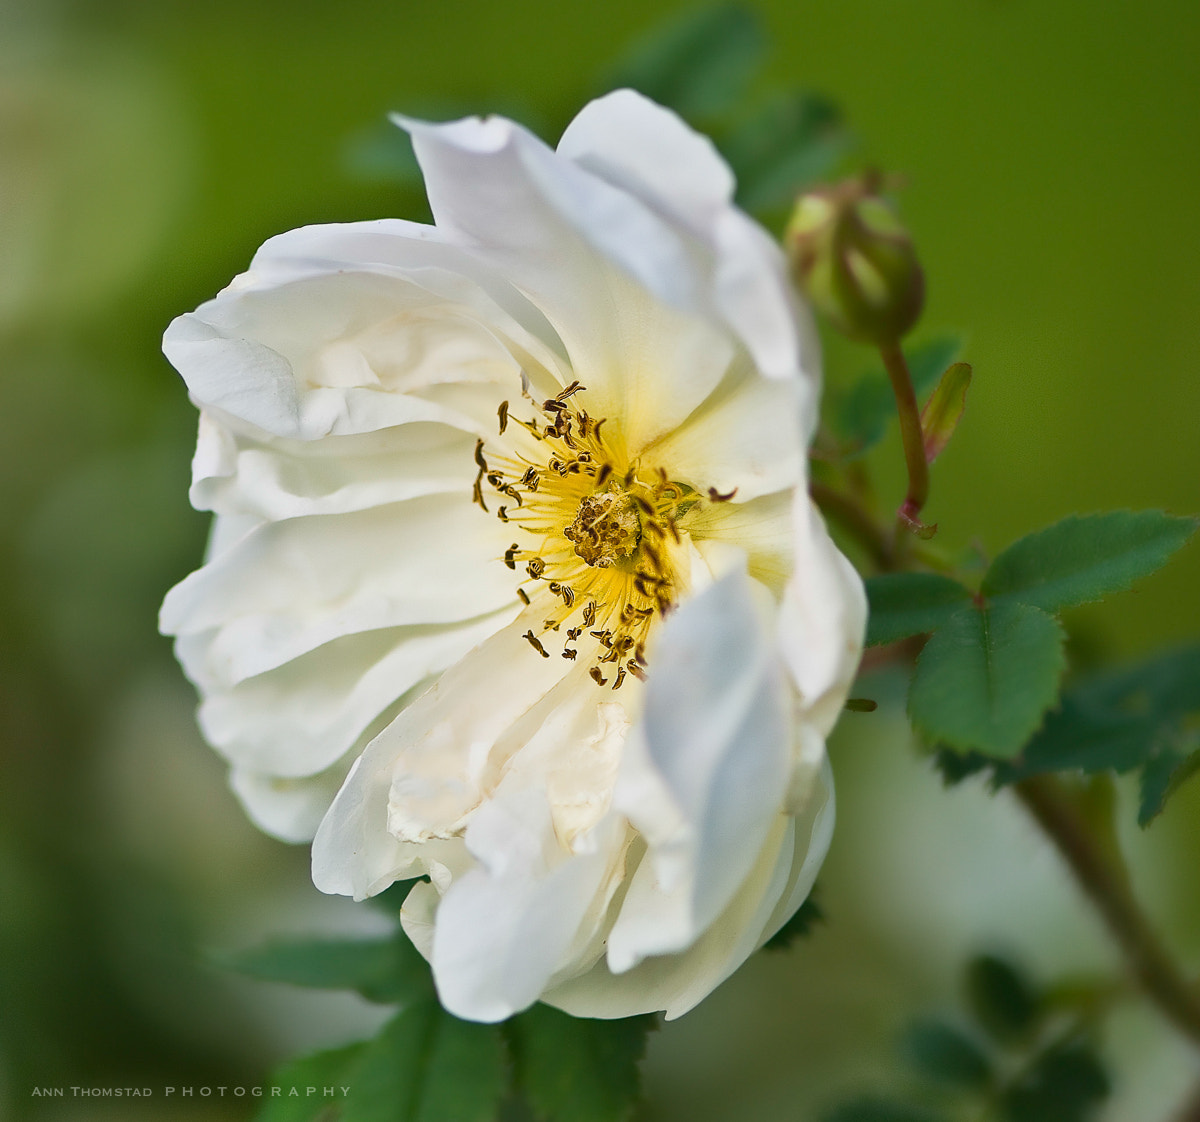 Photograph White Rose by Ann Thomstad on 500px